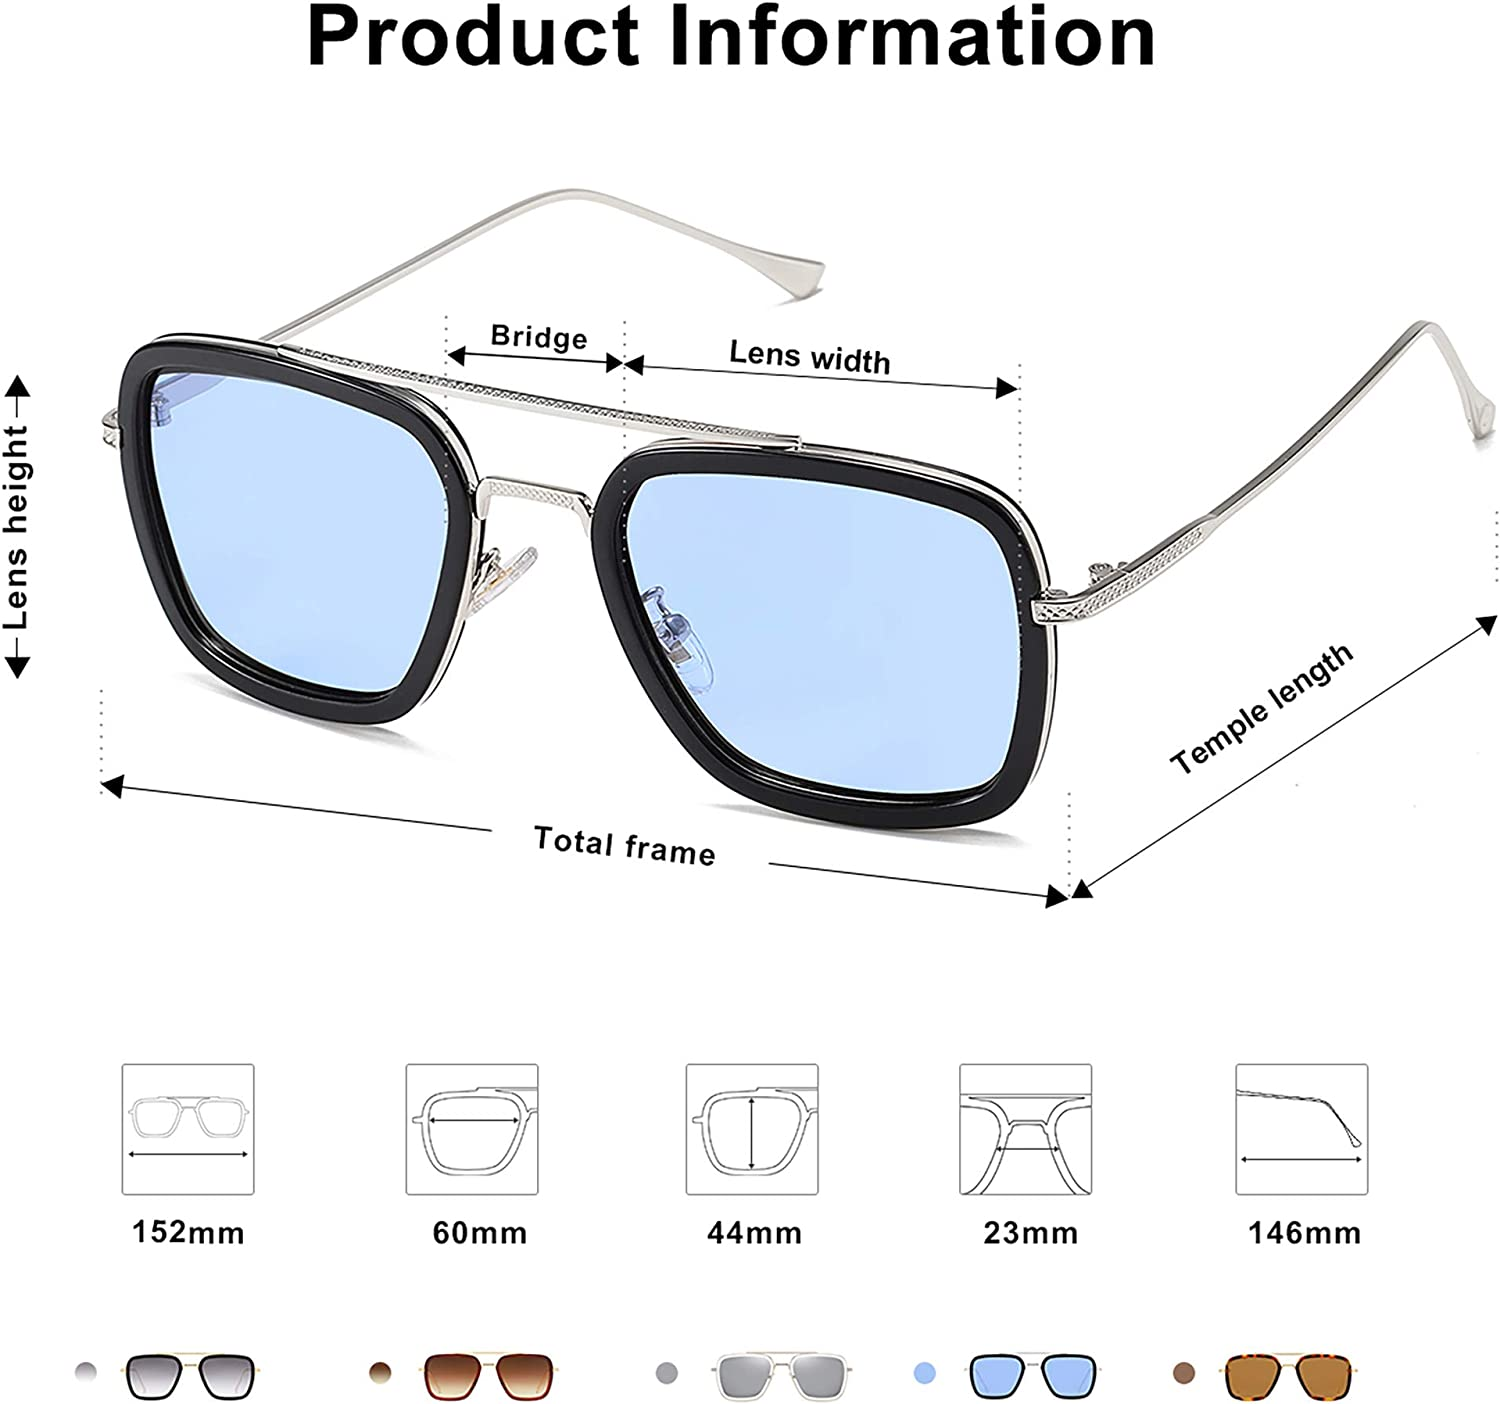 SOJOS Polarized Sunglasses for Men Women Retro Aviator Square Goggle Classic Alloy Frame HERO SJ1126